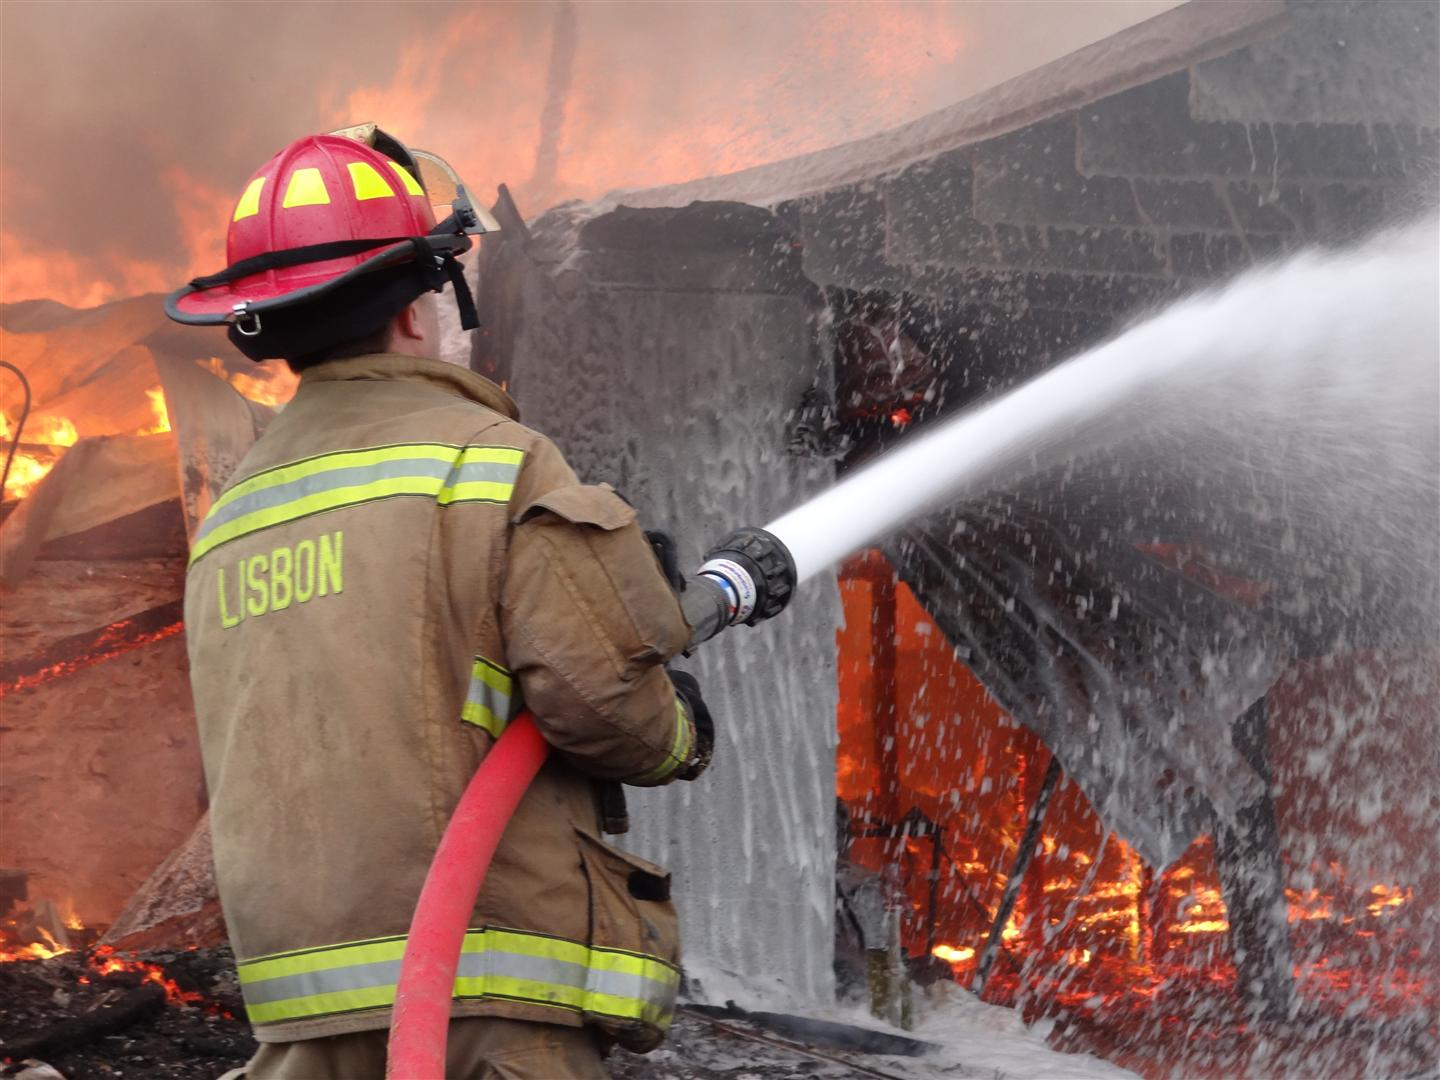 More than 60 firefighters team to fight barn fire in Woodbine